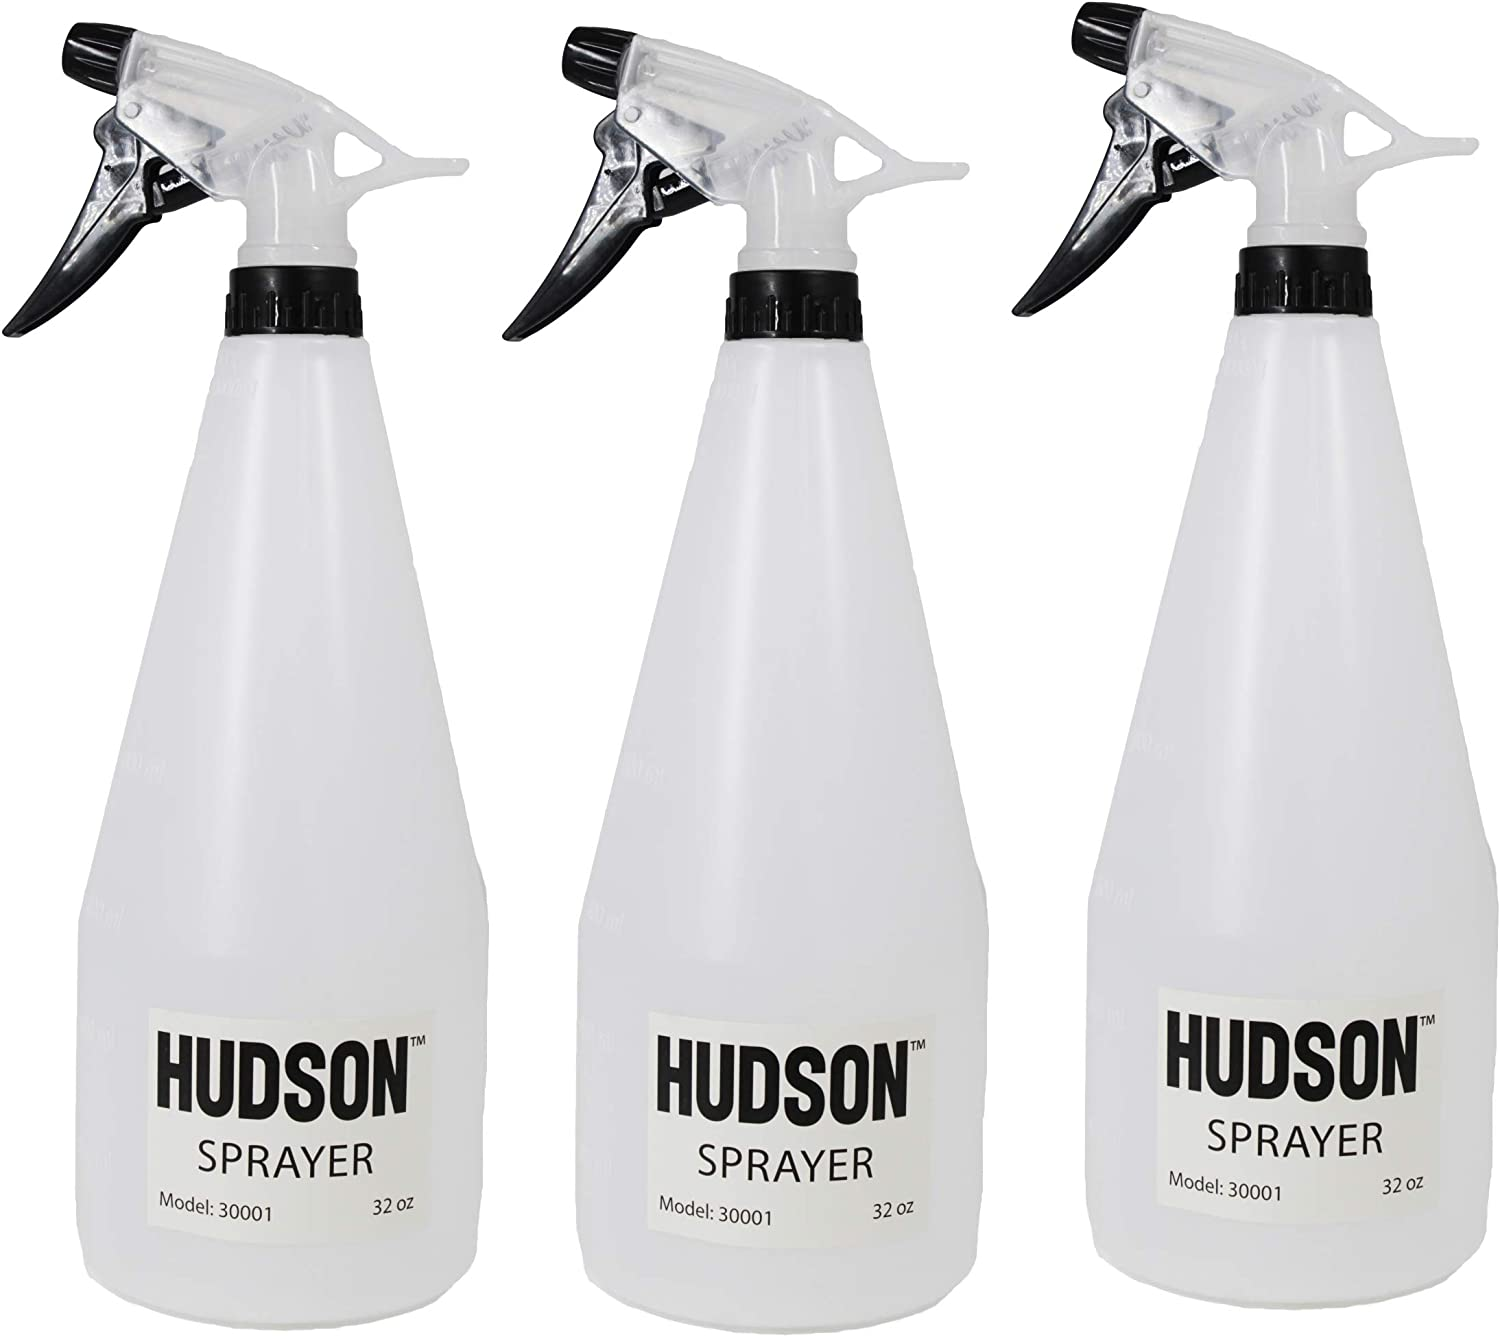 Hudson Sprayer 32 Oz Spray Bottle (Pack of 3) Trigger Empty Sprayer, for Use with Household & Commercial Cleaners